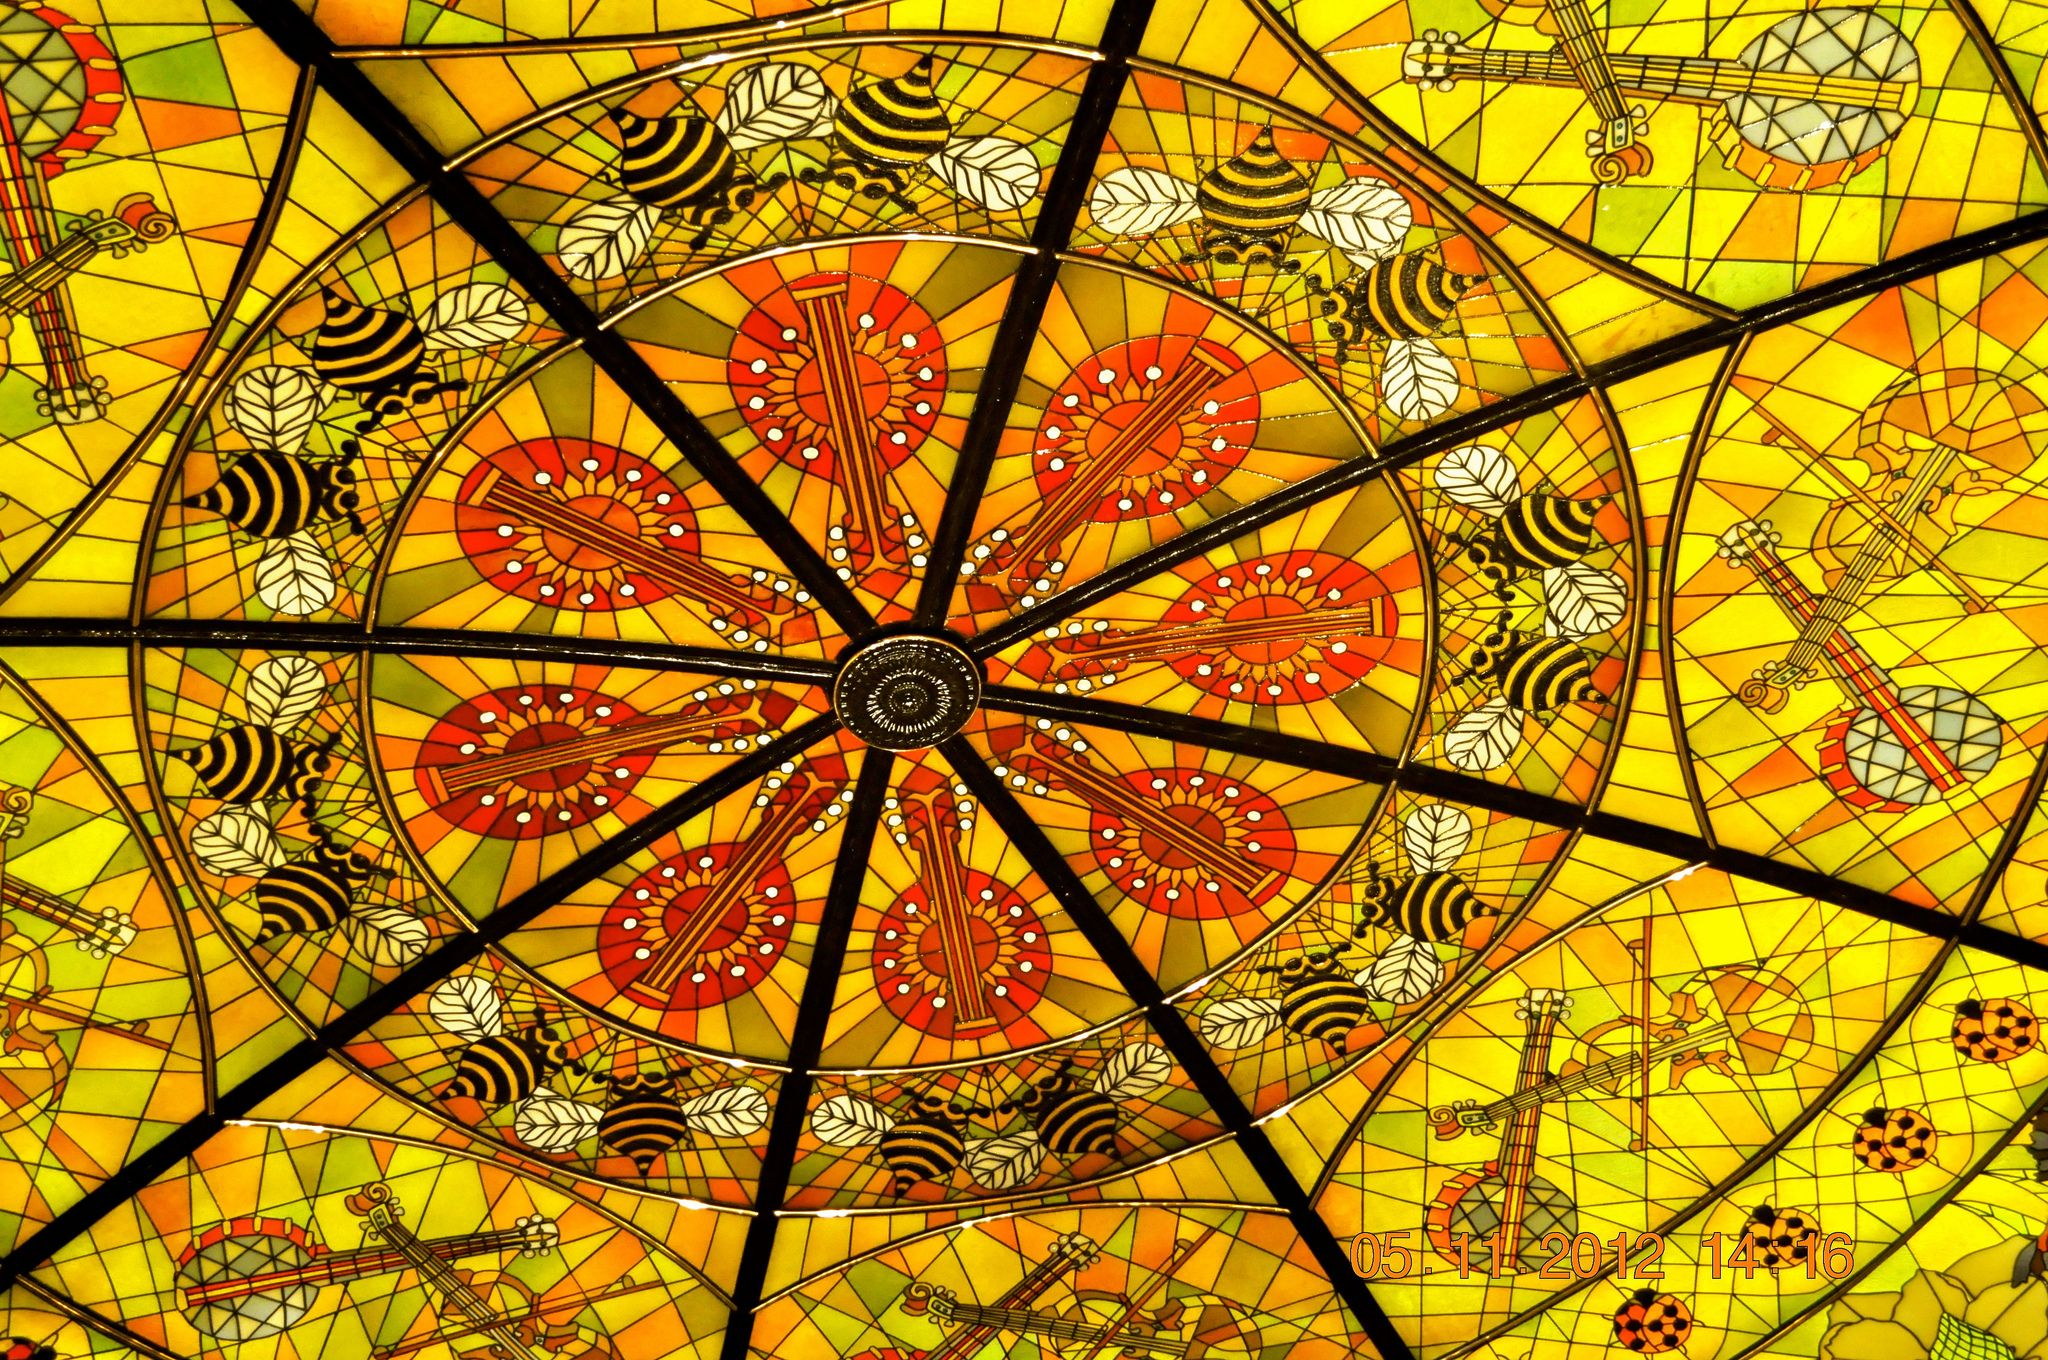 Ceiling stain Glass Opryland Hotel Nashville, Tn Stained